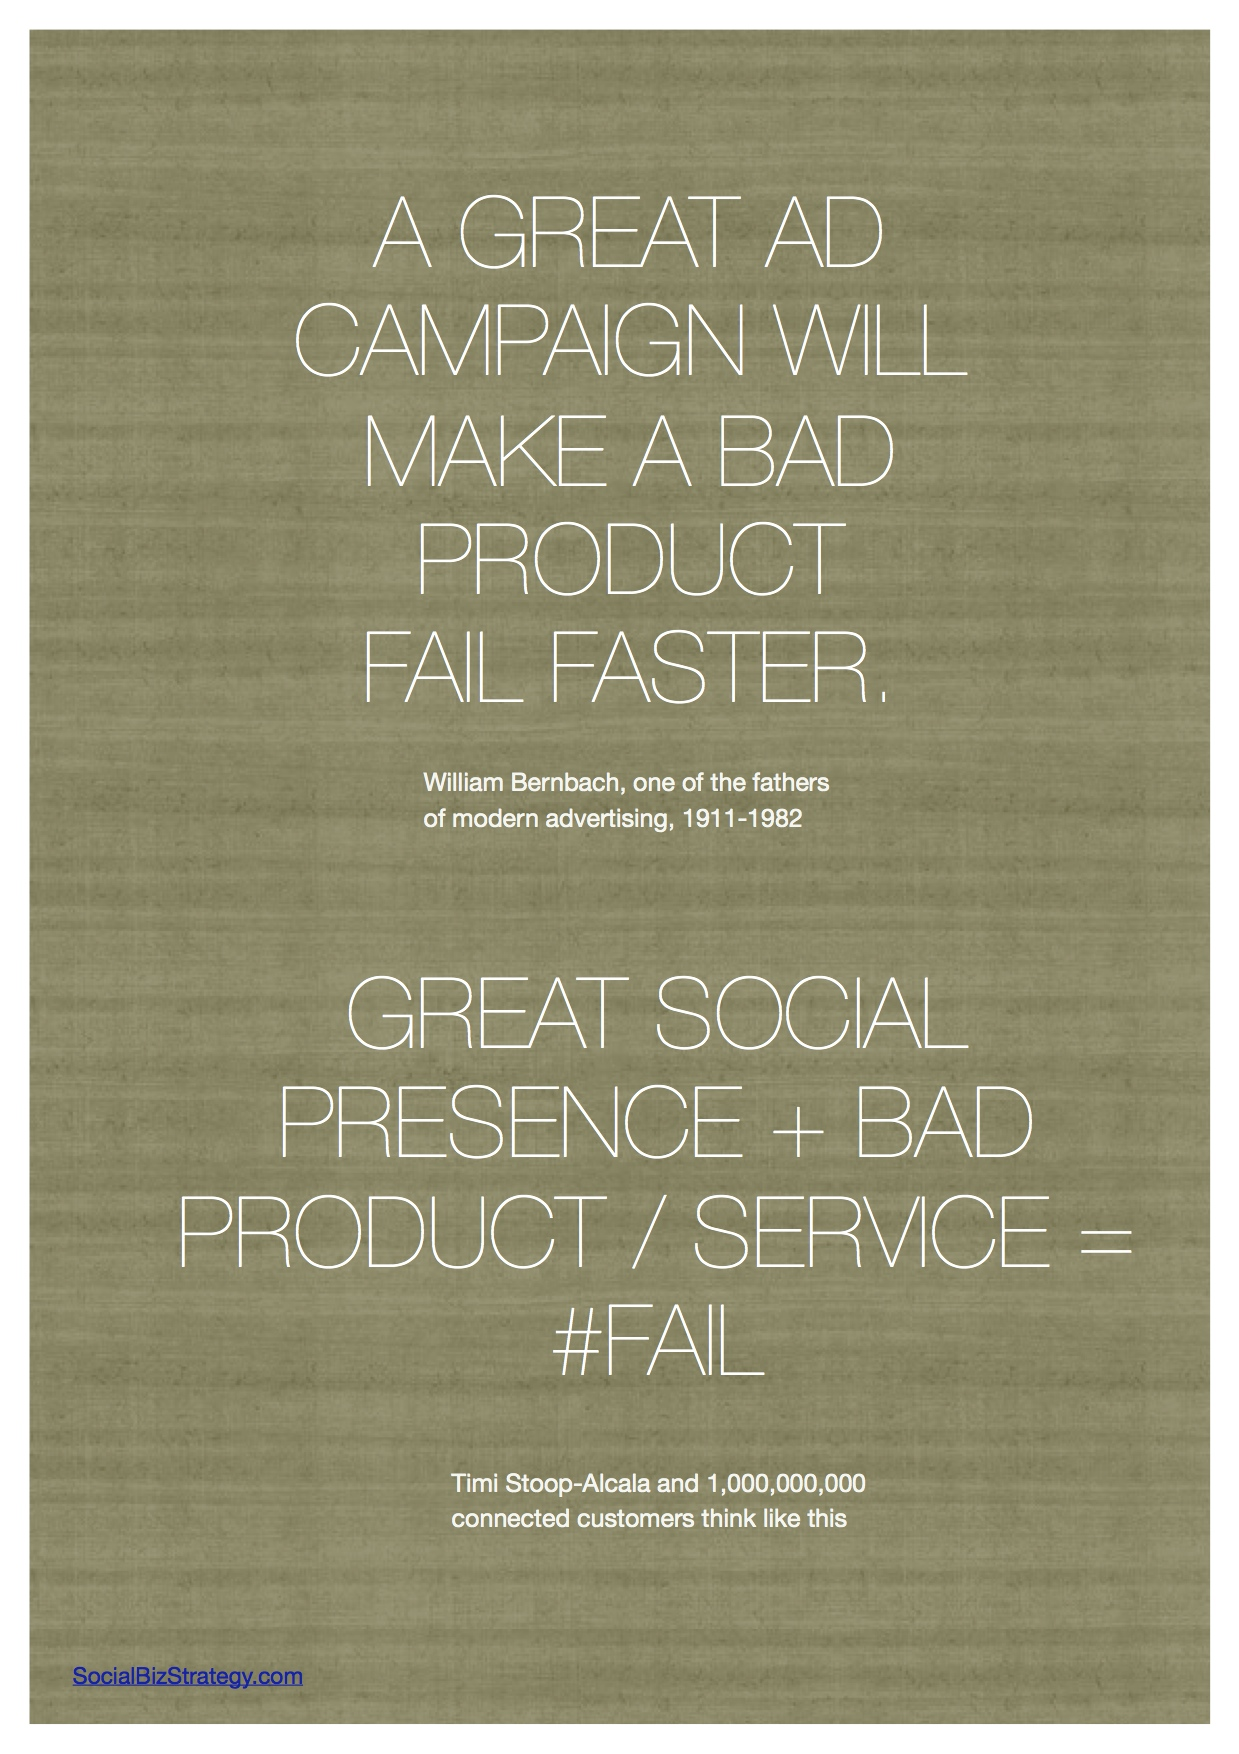 Good social + bad business = #FAIL